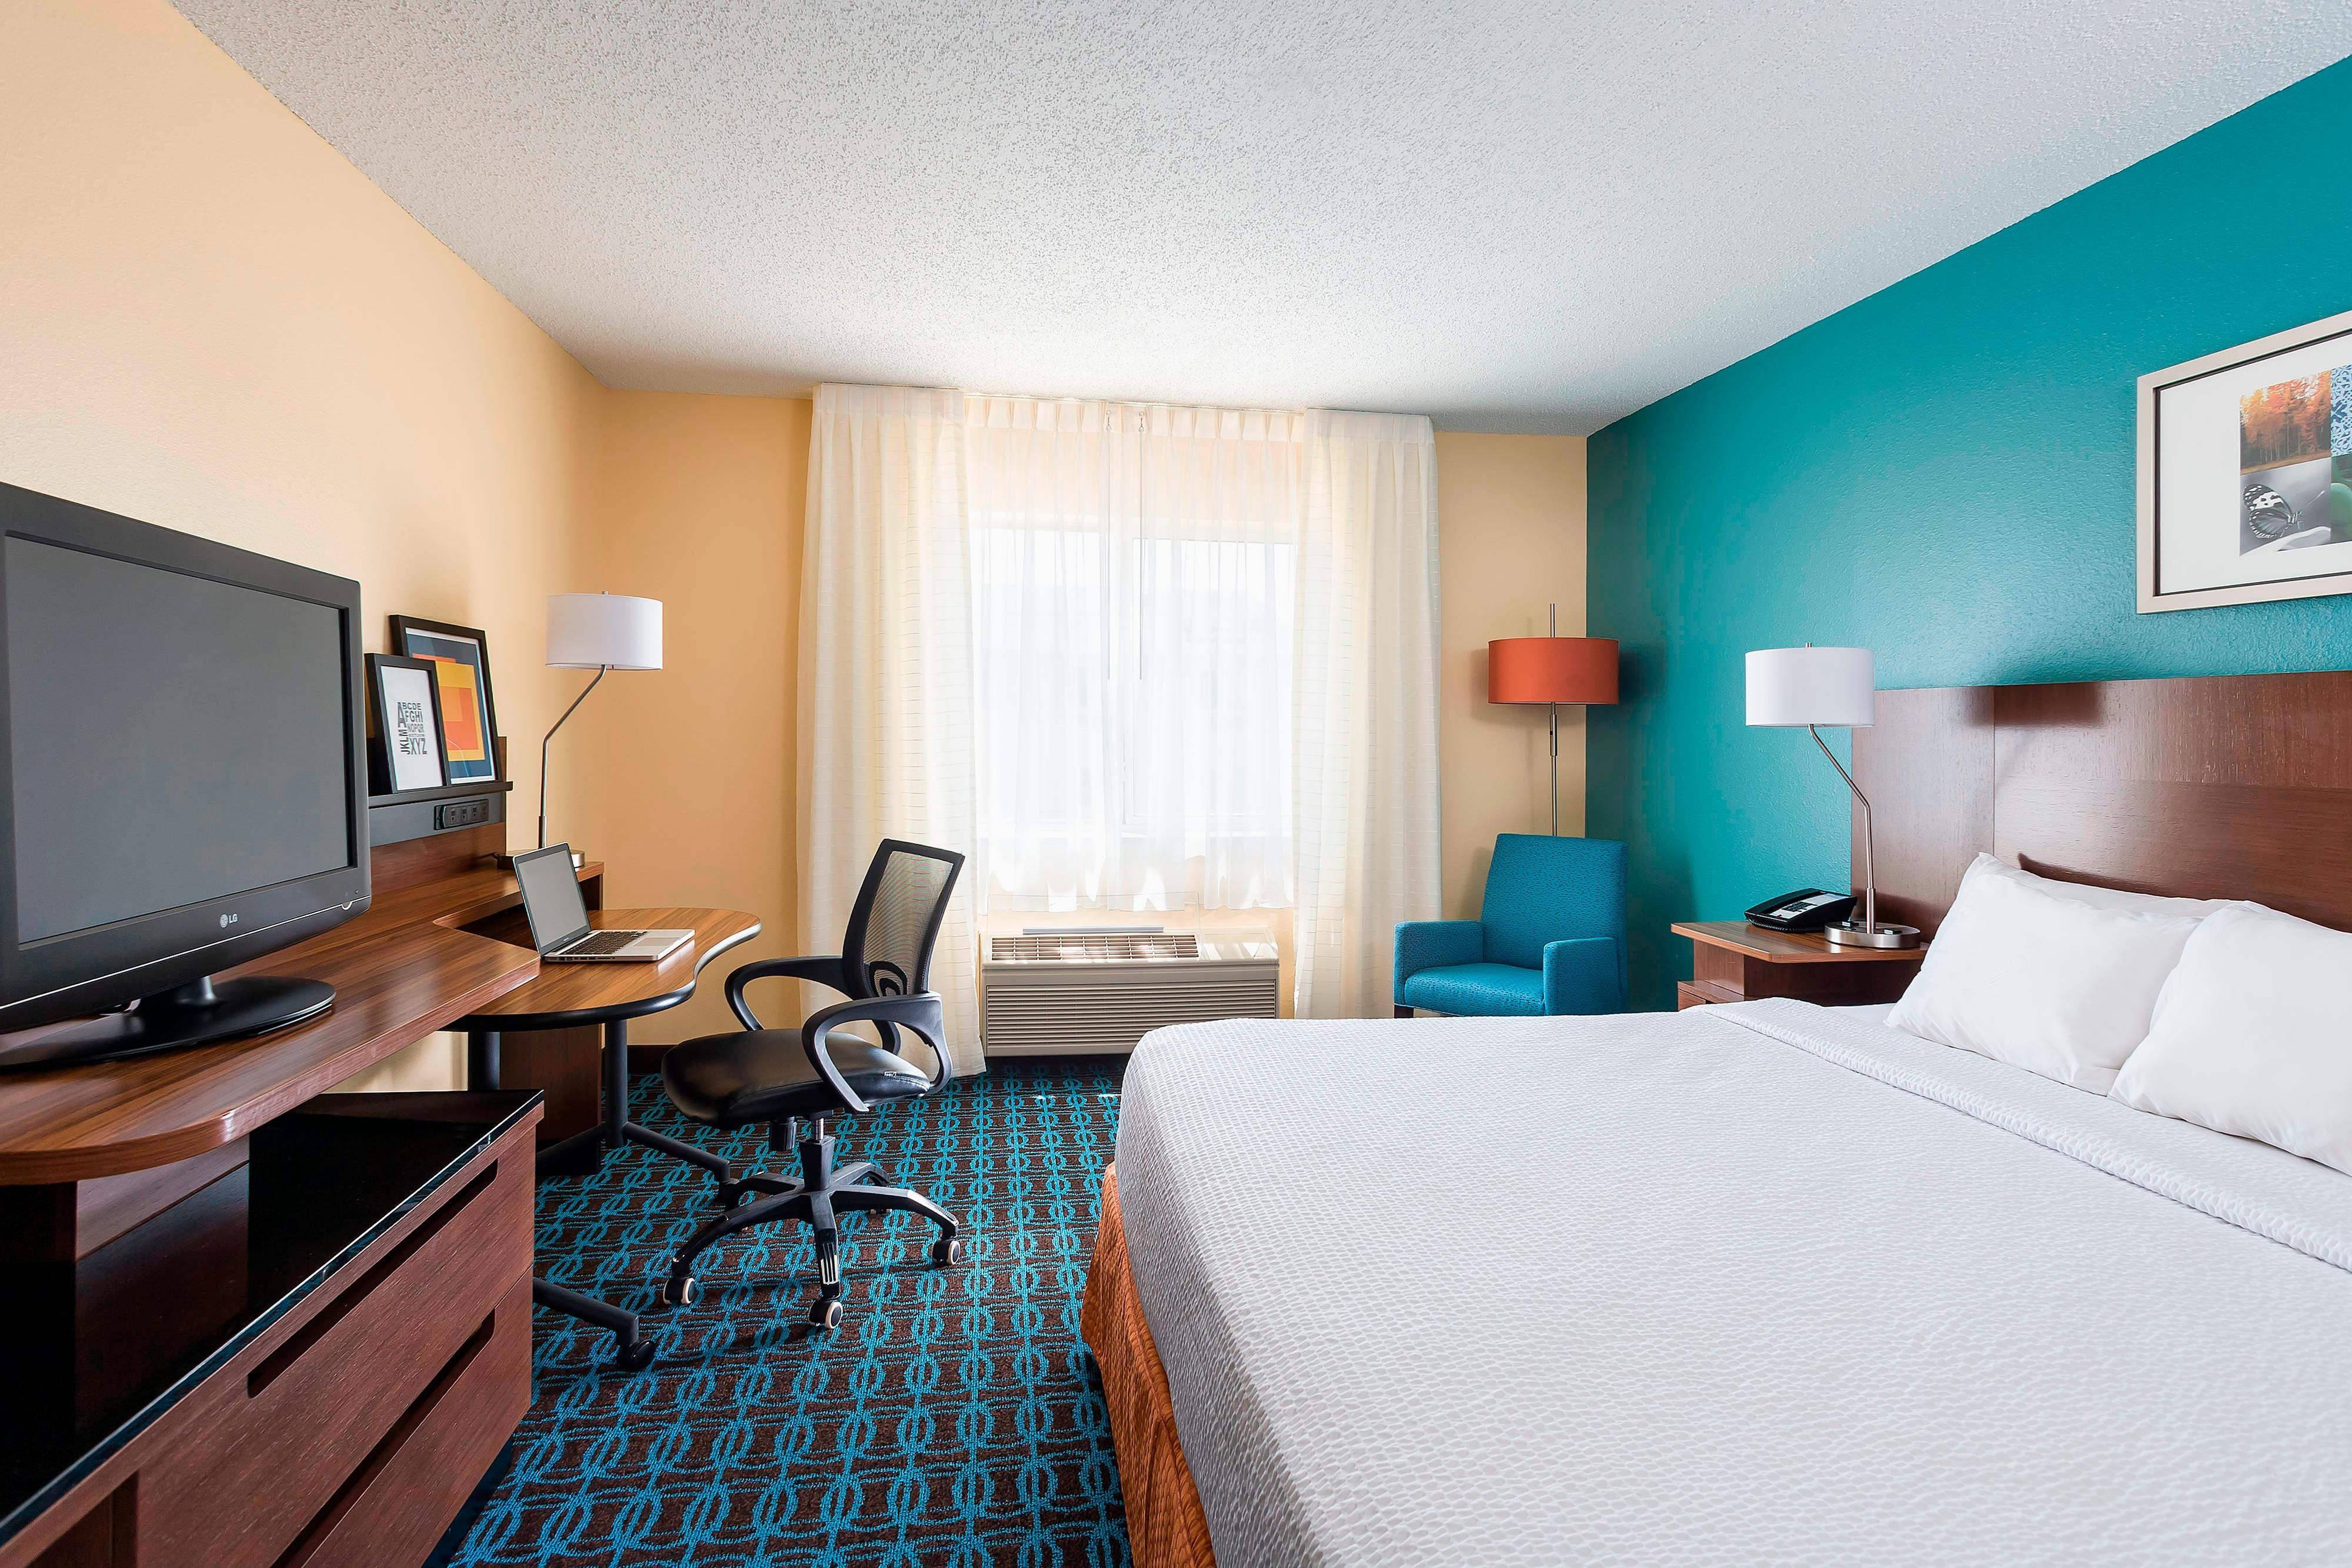 Hotel Rooms near College Station